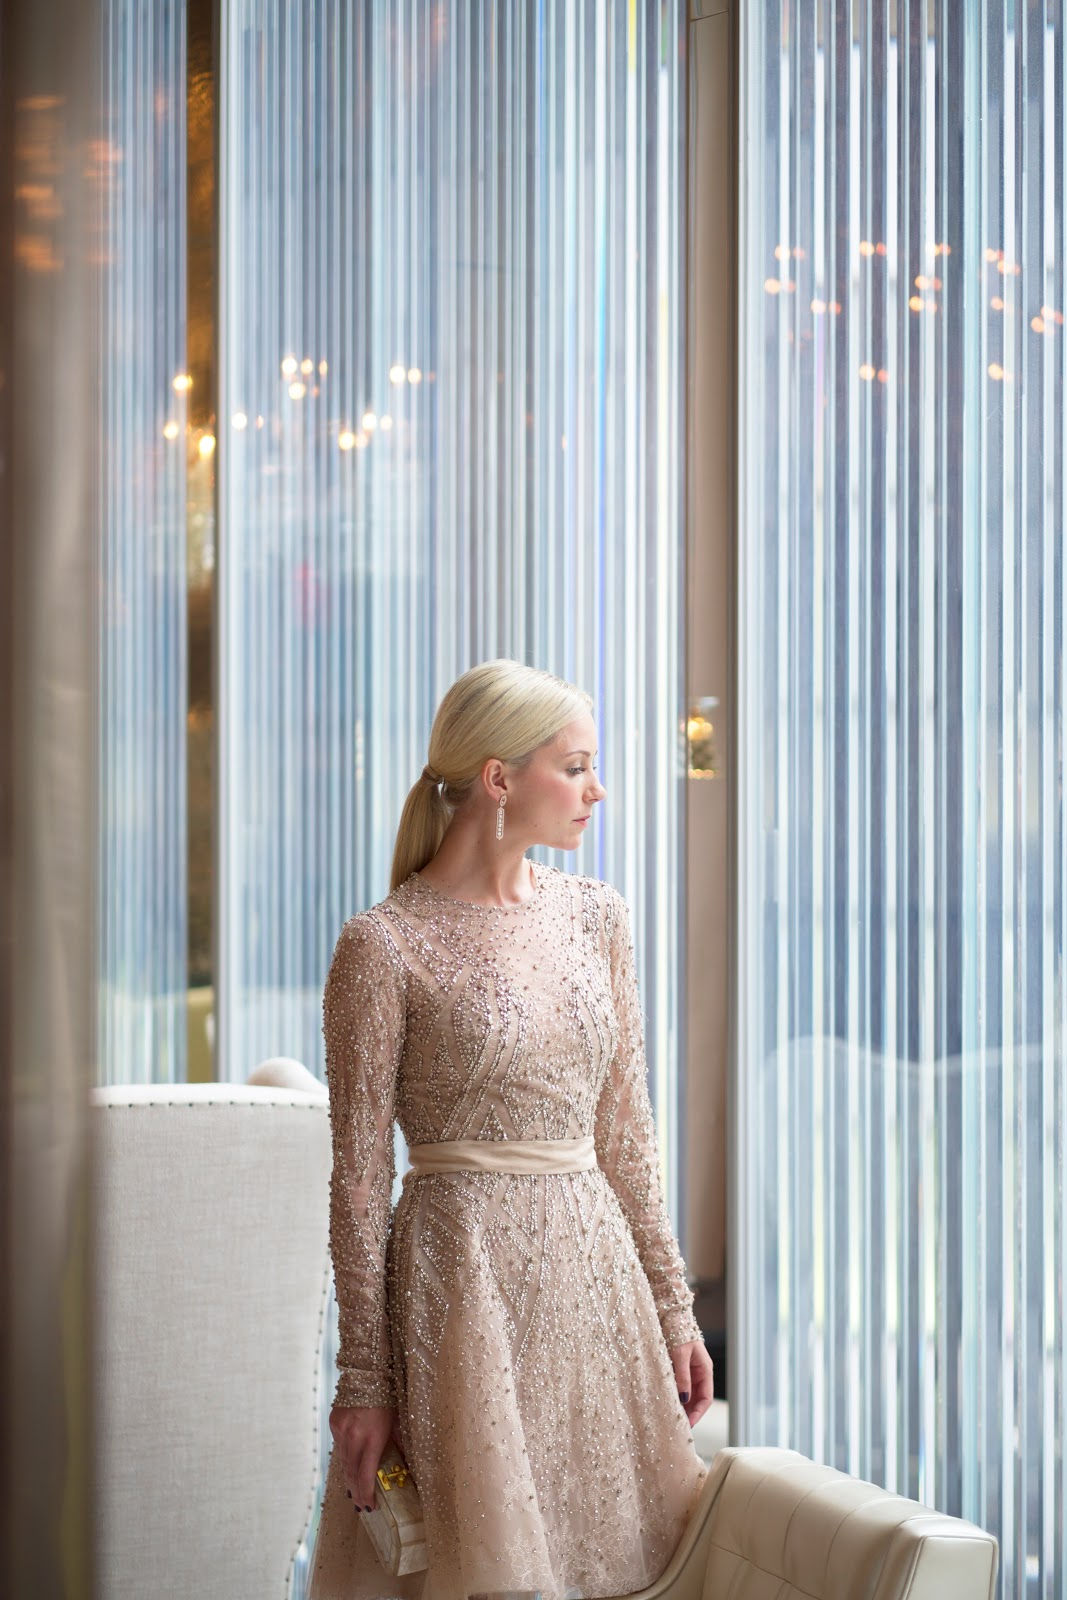 c7de781c Dresses: Elie Saab, Monique Lhuillier, Naeem Khan all exclusive to Bergdorf  Goodman (sold both online and in stores). I had the incredible opportunity  to ...